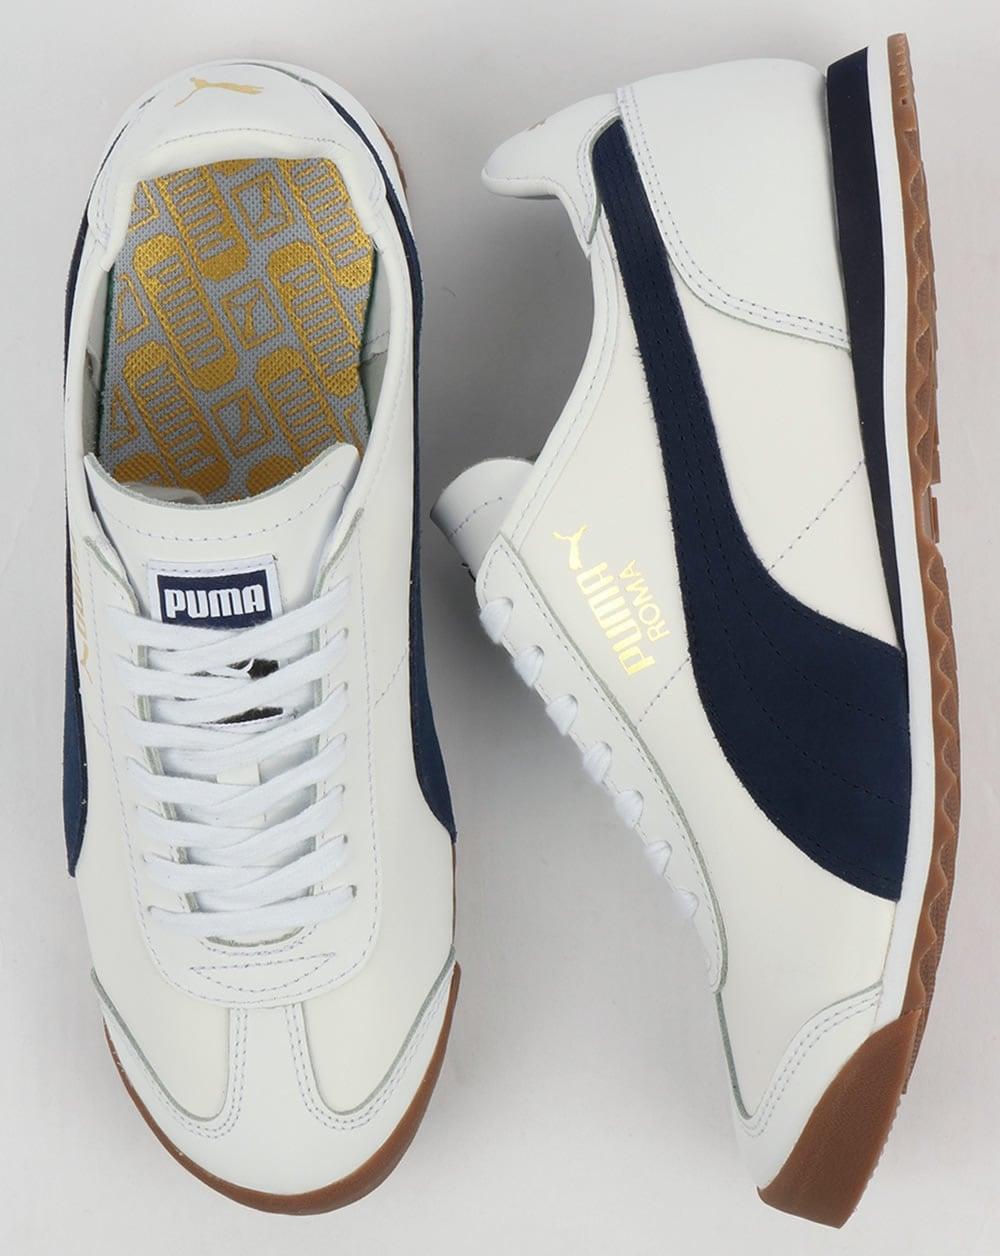 0d904c52336 Puma Roma Leather 80s Trainers White Navy